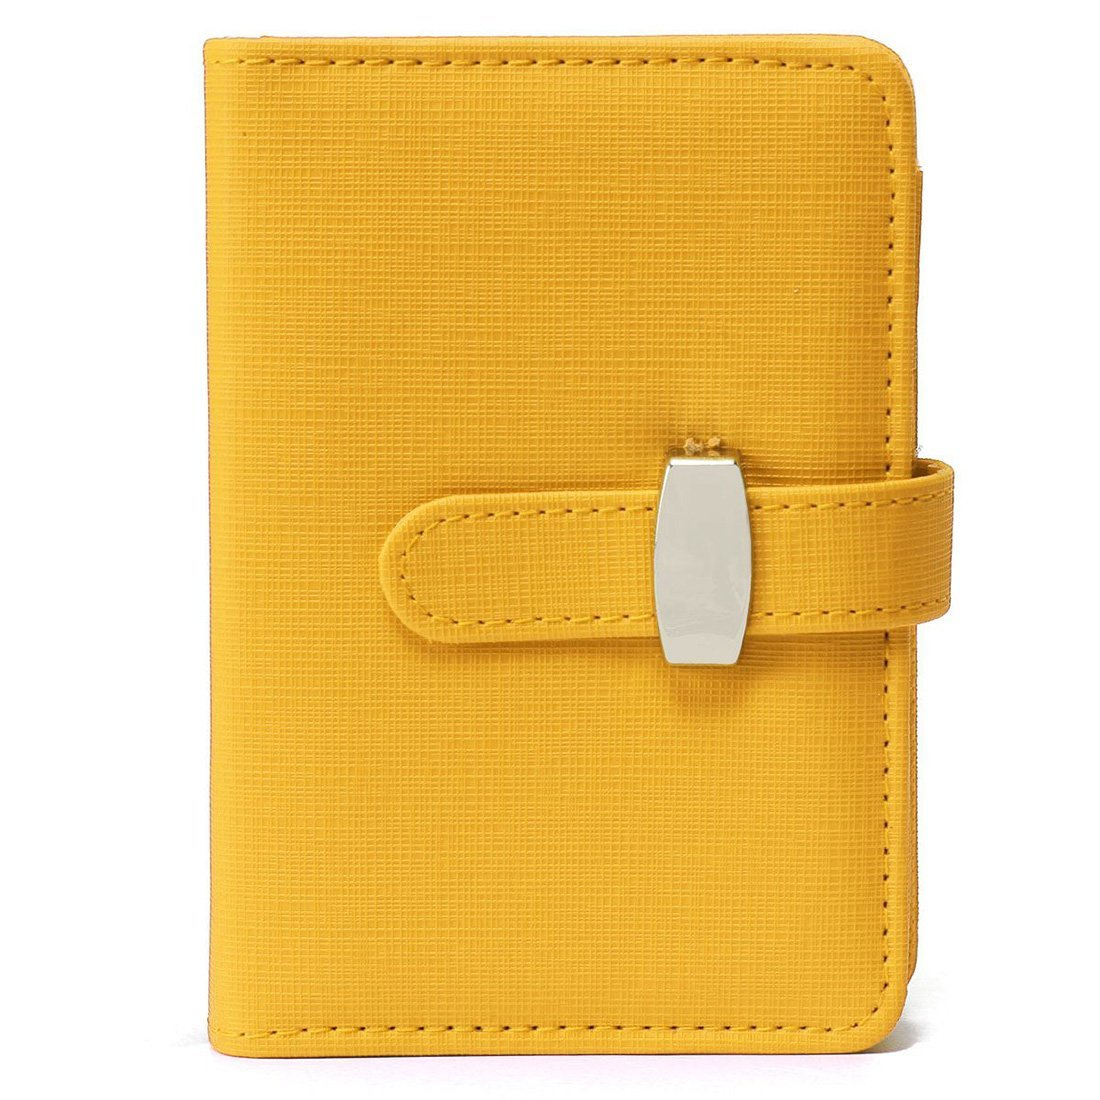 TOOGOO(R) Modern Design A7 Personal Organiser Planner PU Leather Cover Diary Notebook School Office Stationery£¨Yellow£